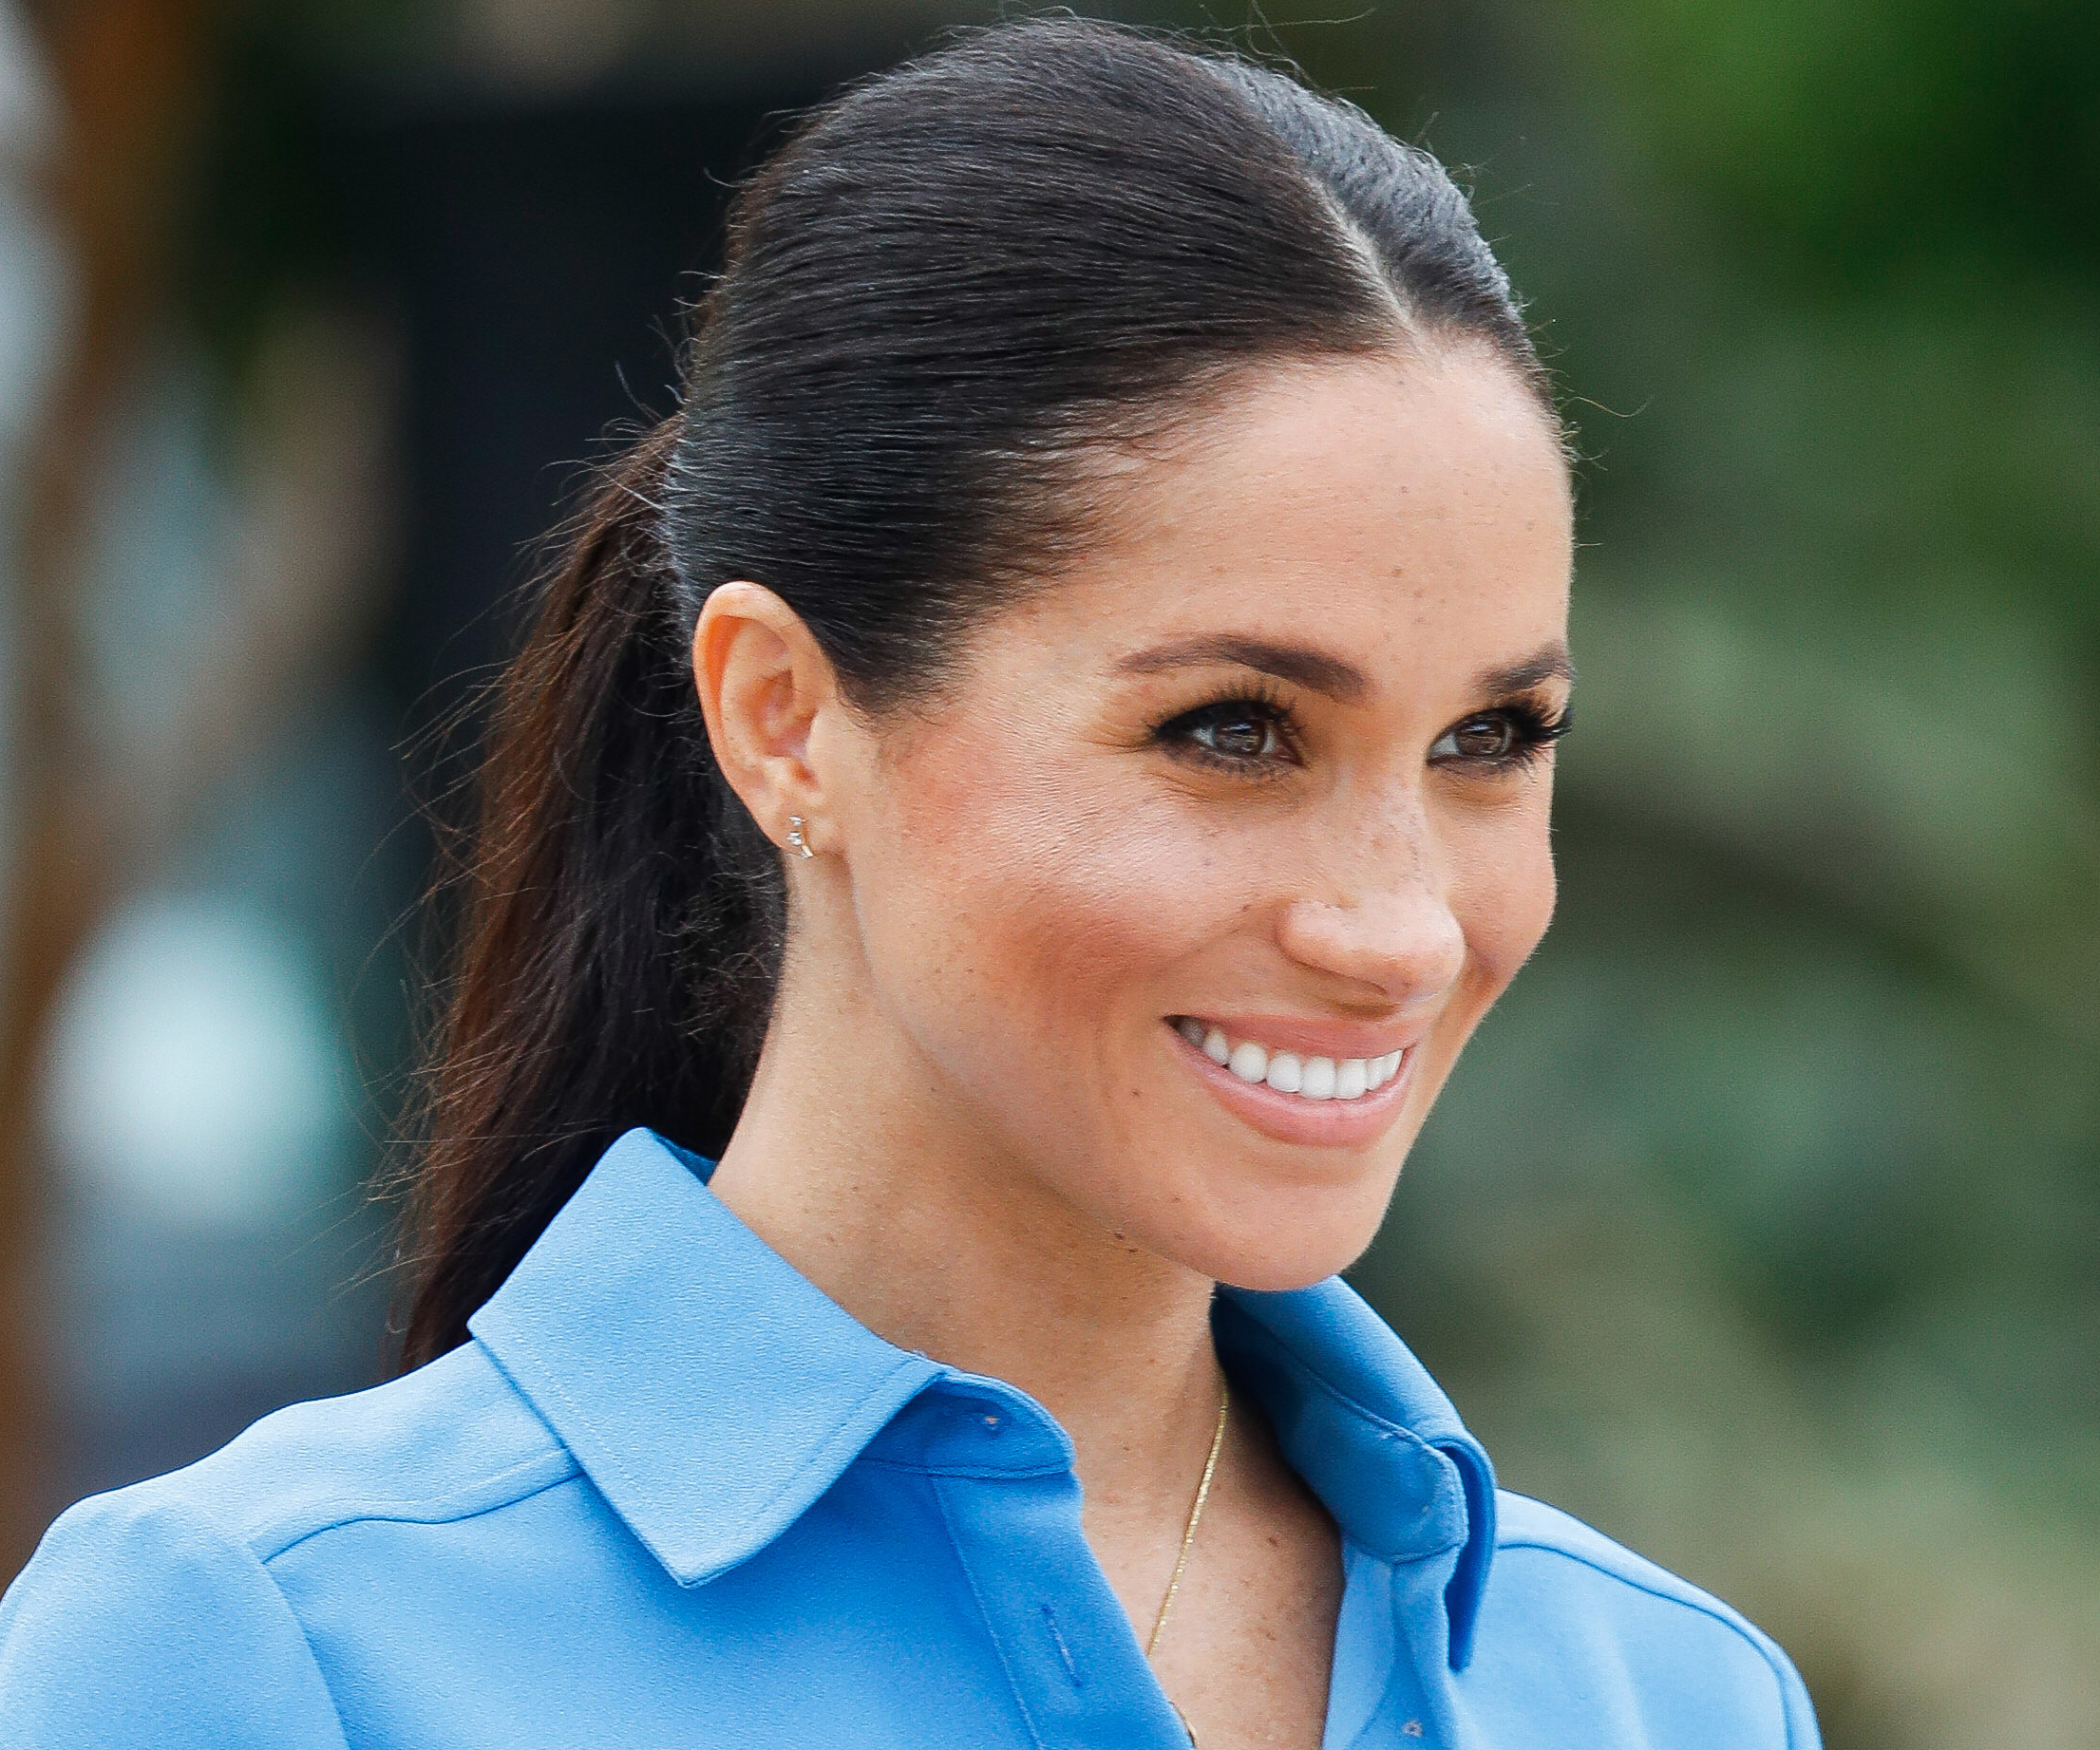 Meghan Markle Changed Fashion To Impress Kate Middleton During This 'Intimidating' Event